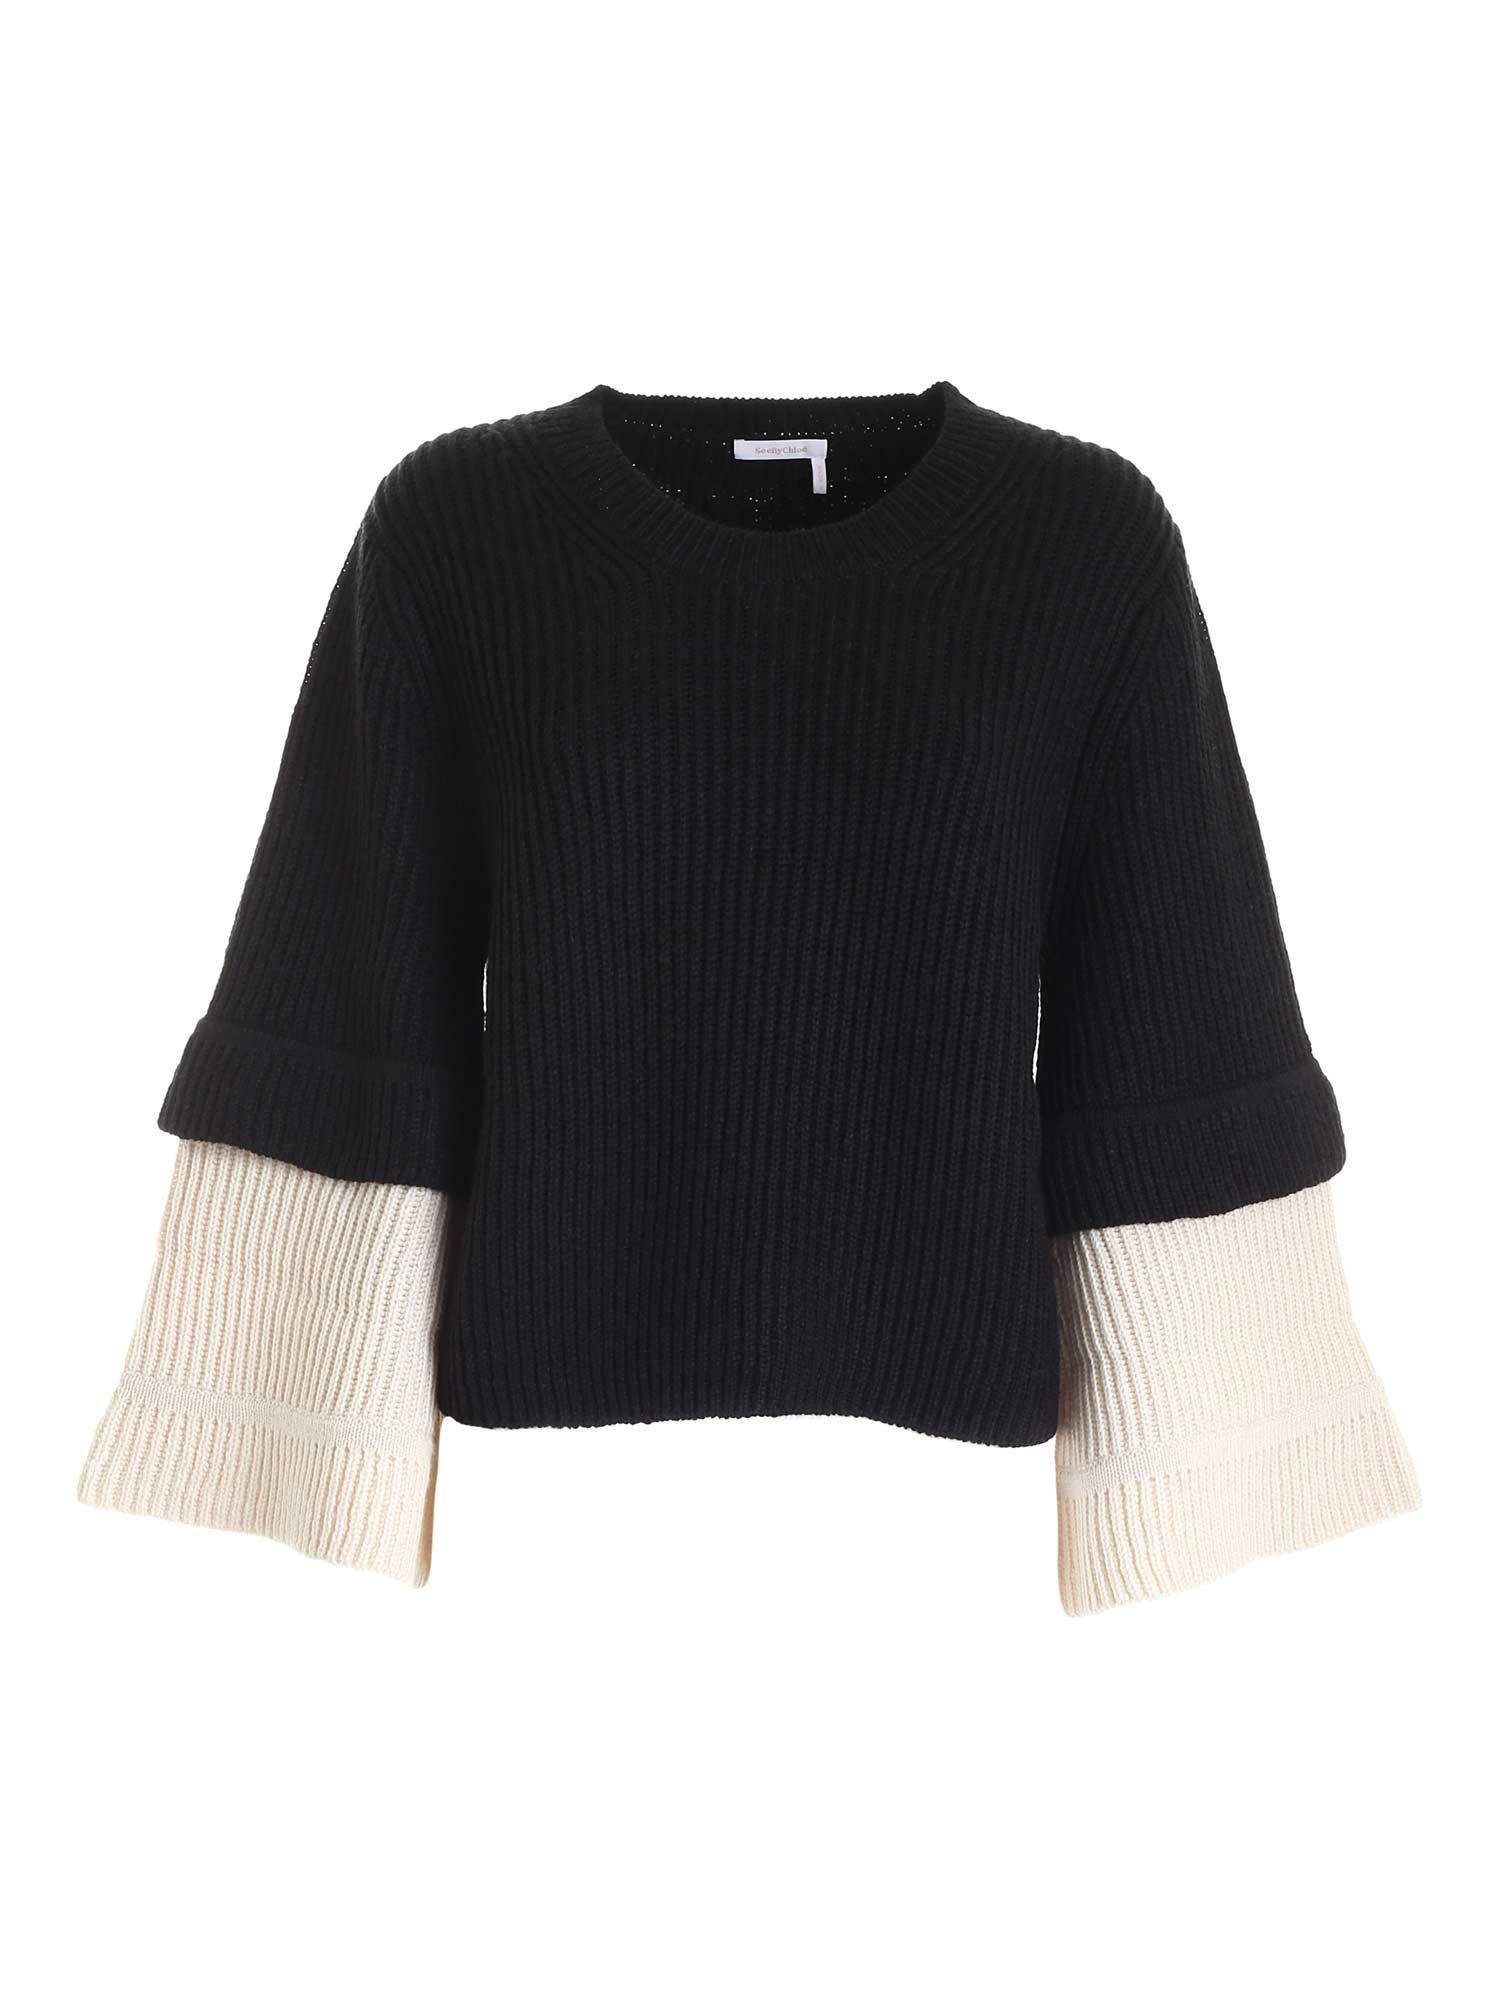 See By Chloé WIDE SLEEVES PULLOVER IN BLACK AND WHITE